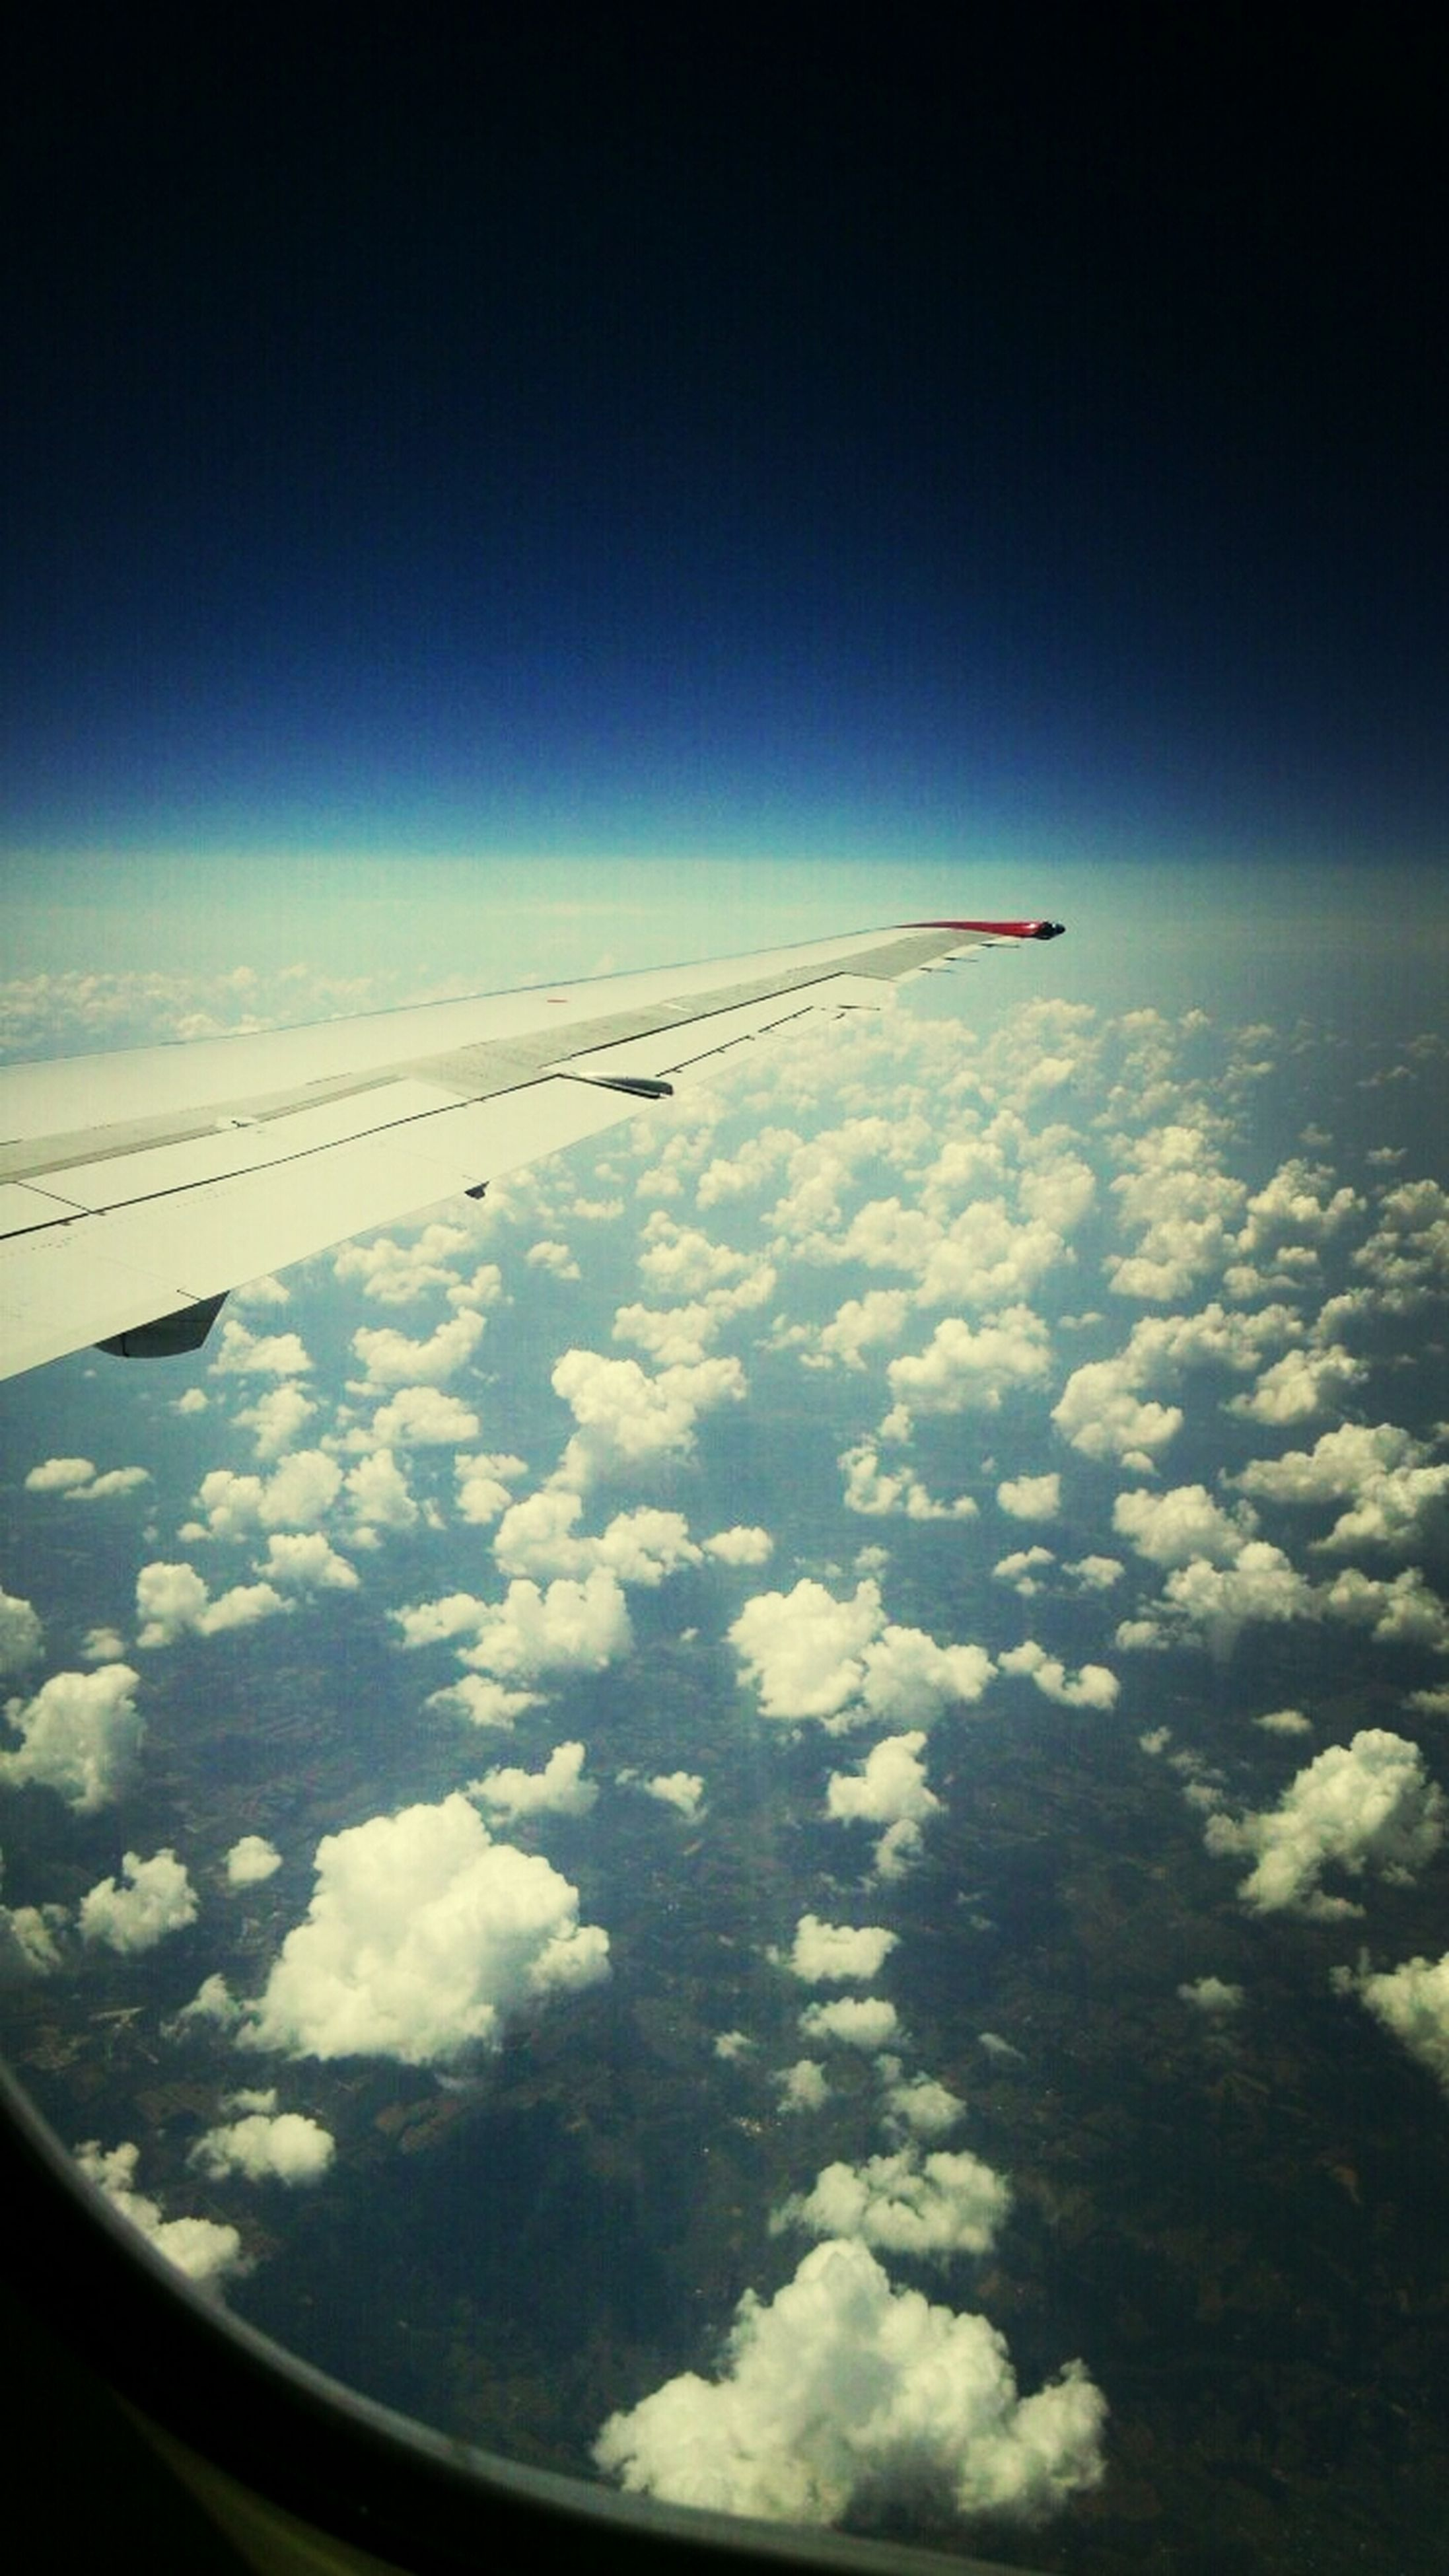 transportation, airplane, flying, mode of transport, air vehicle, aircraft wing, mid-air, sky, part of, aerial view, travel, cropped, on the move, journey, cloud - sky, scenics, public transportation, vehicle interior, nature, beauty in nature